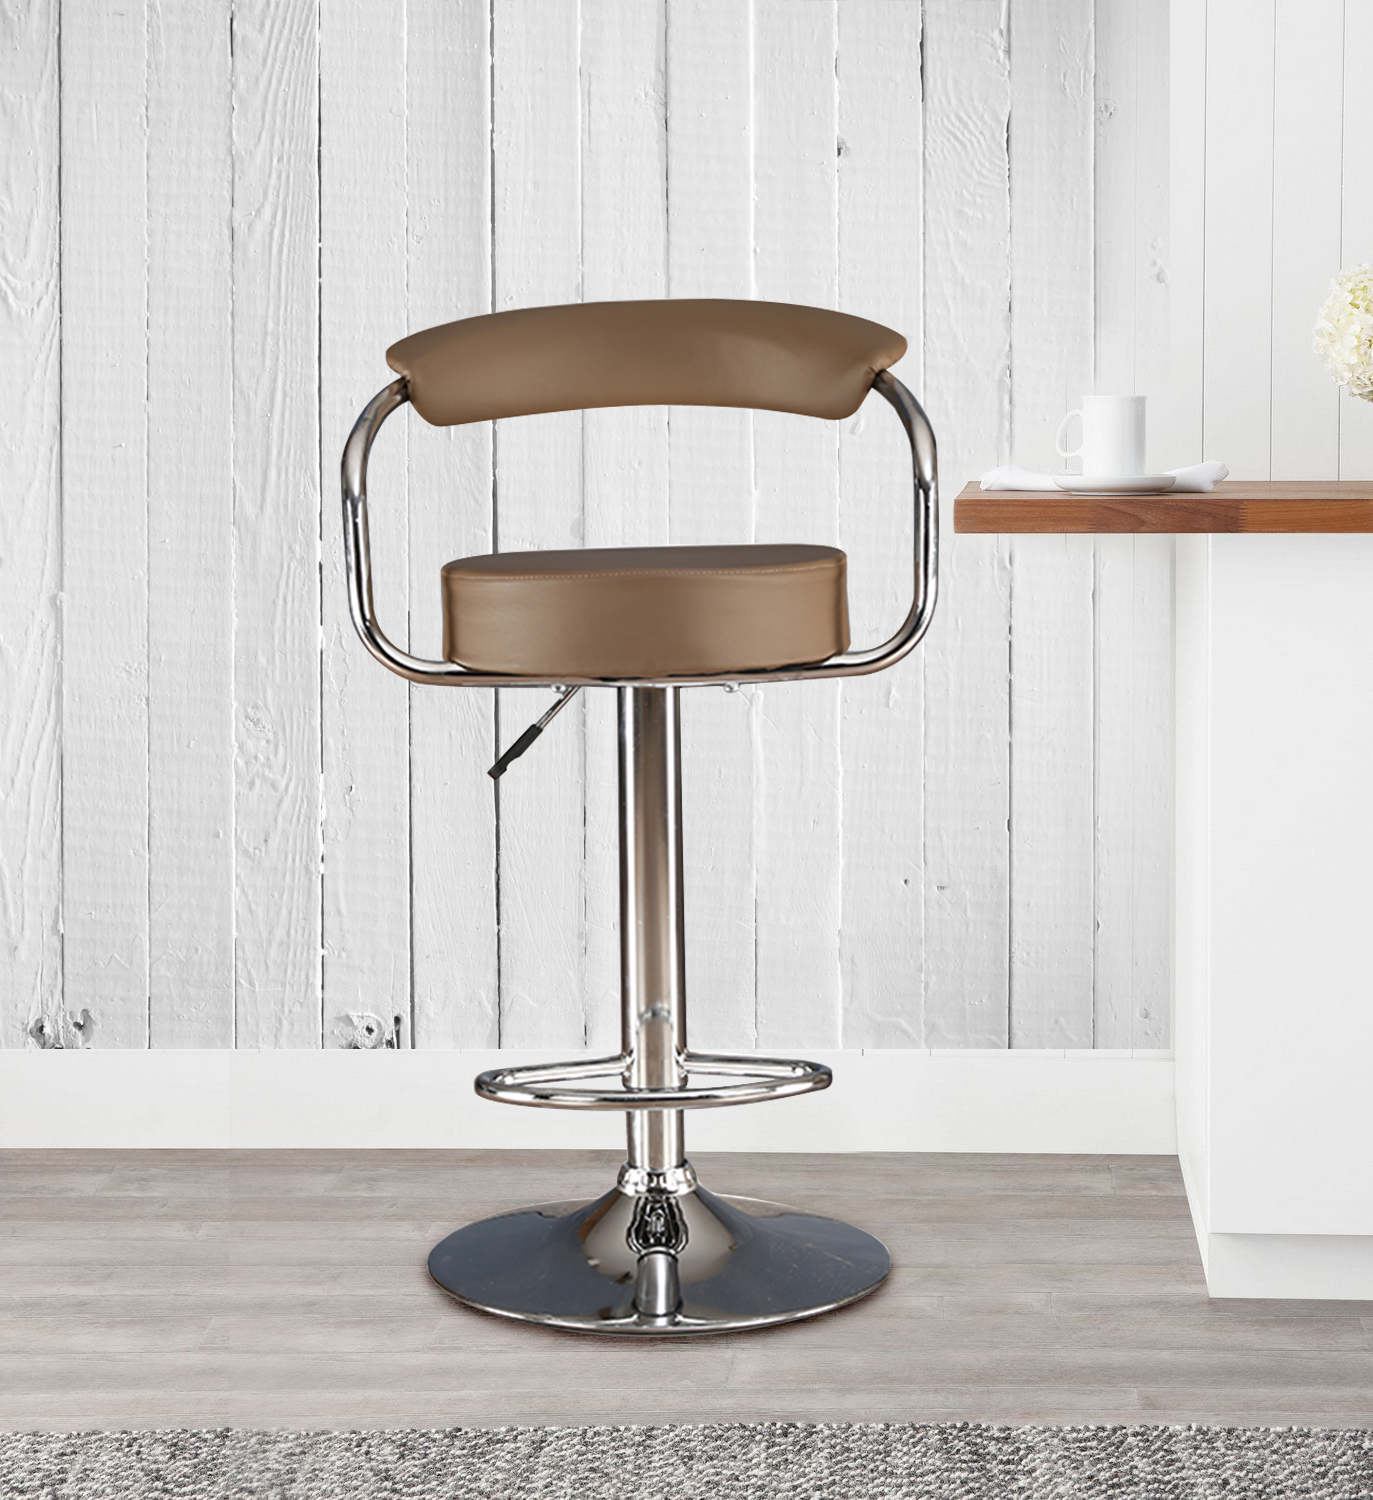 Nook Polyurethane Bar Chair and Stool in Brown Colour by HomeTown